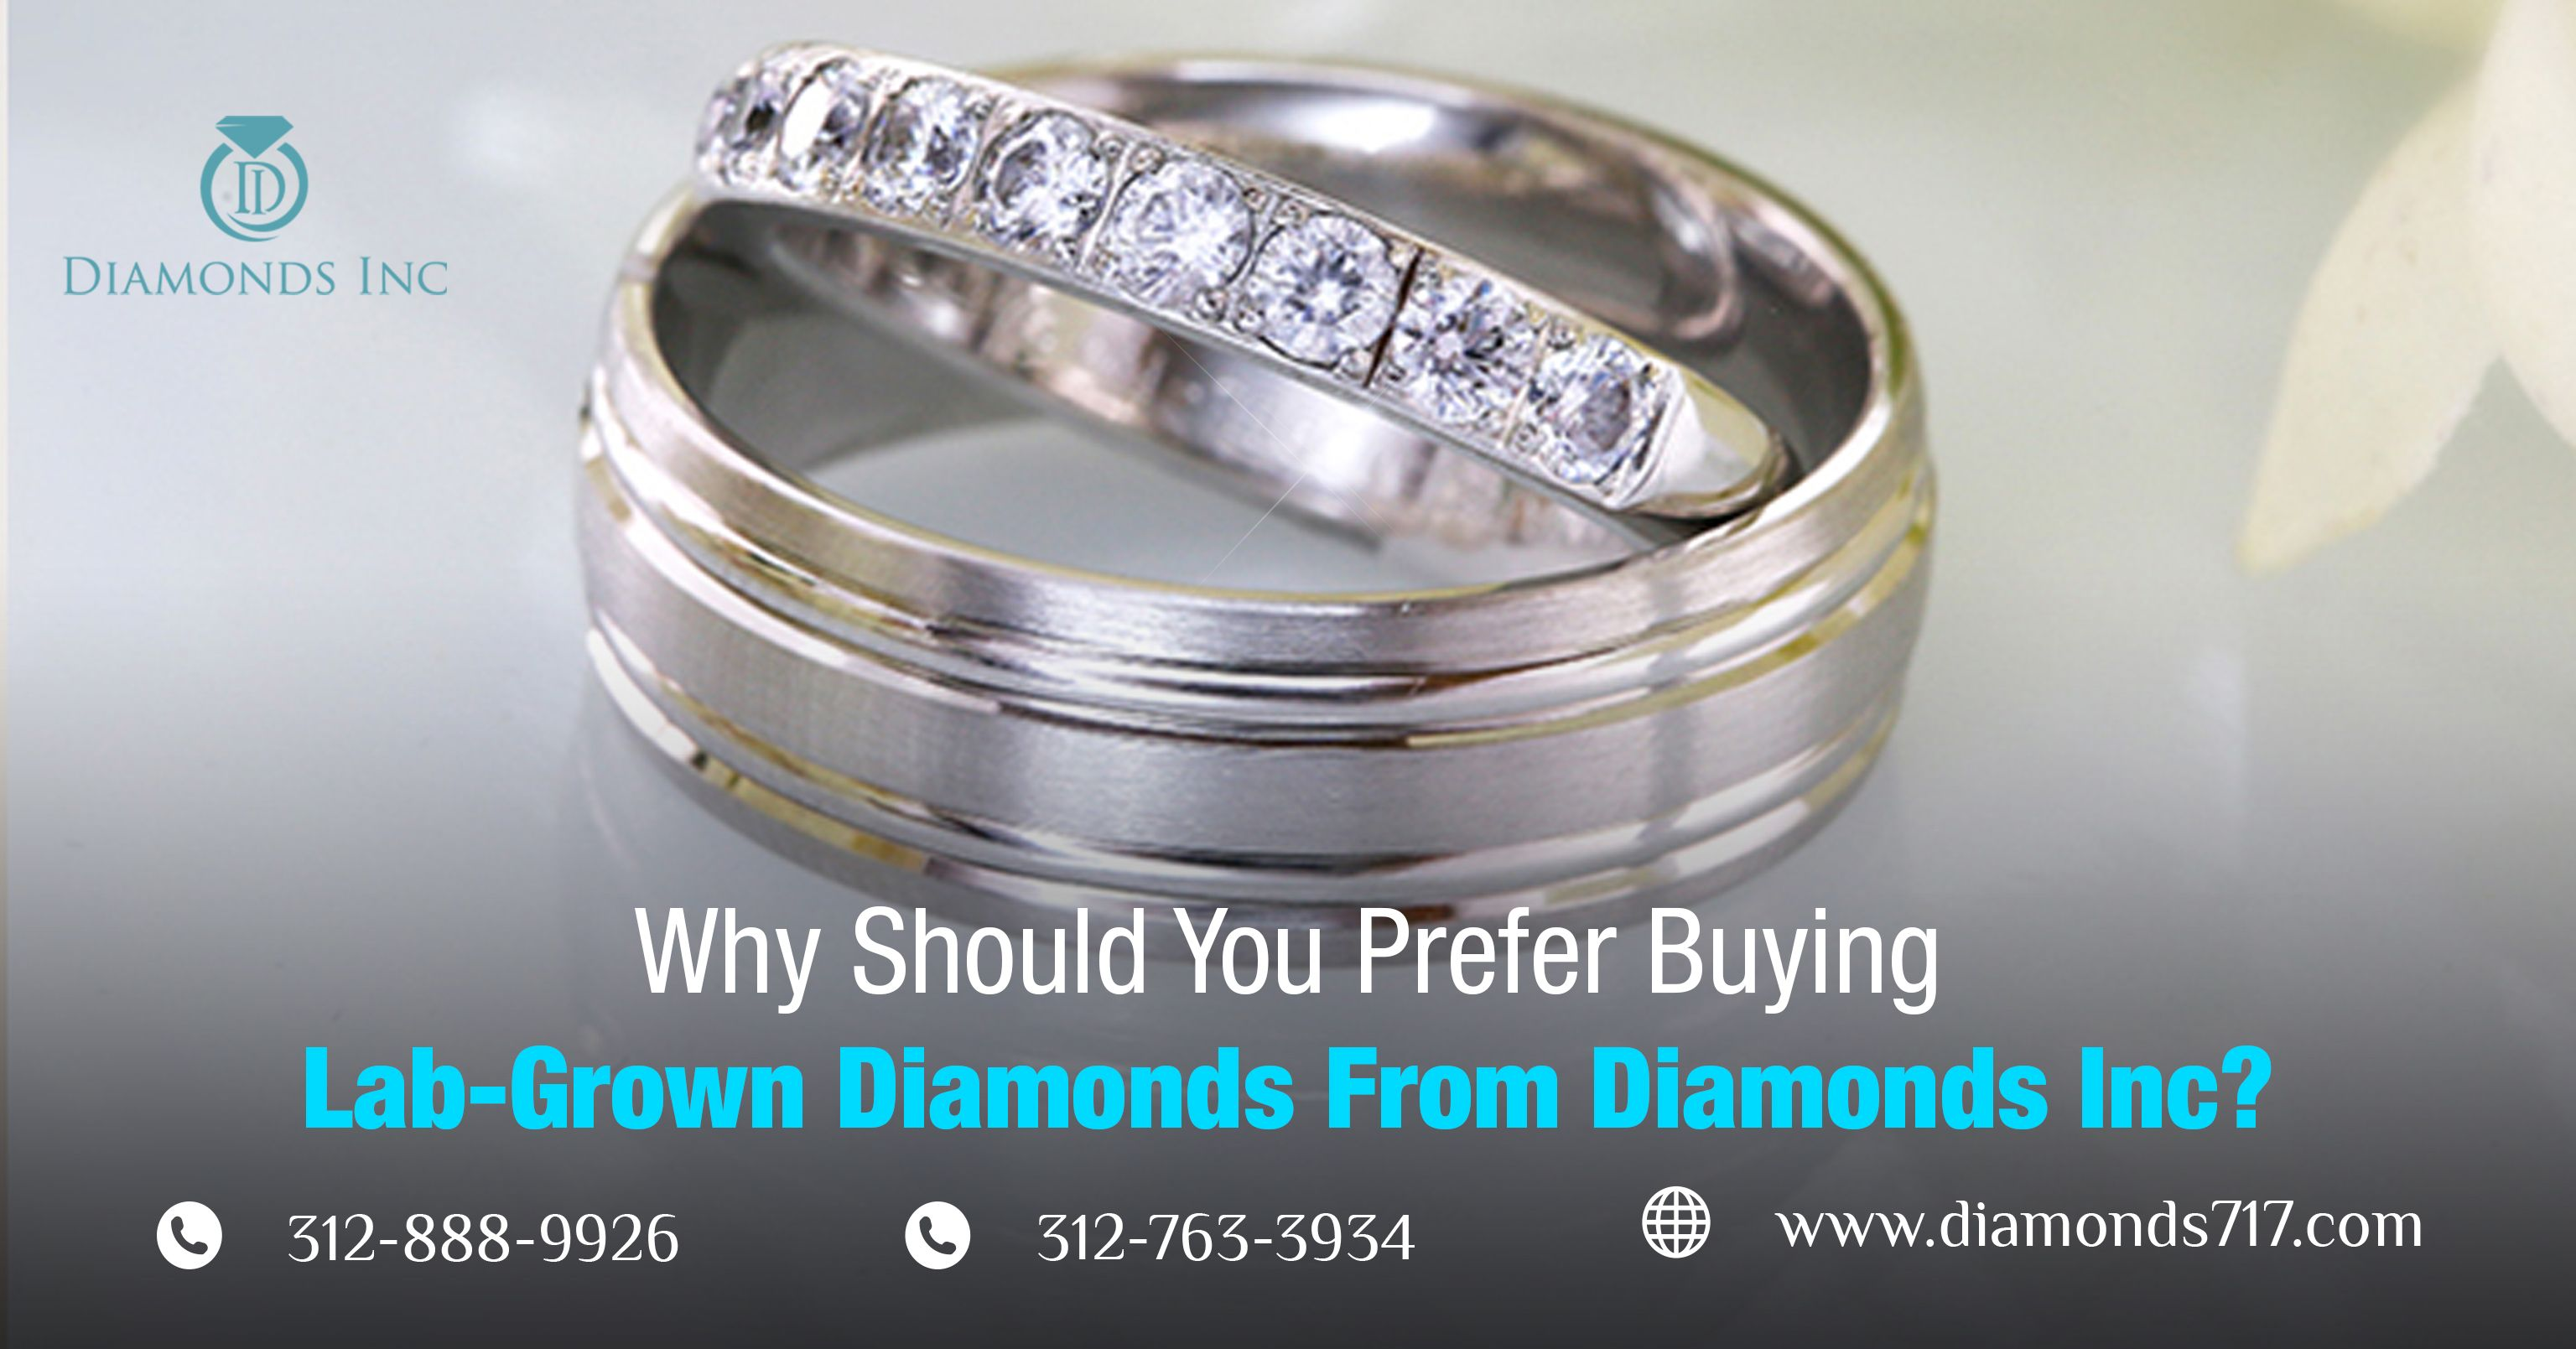 Why Should You Prefer Buying Lab-grown Diamonds From Diamonds Inc?